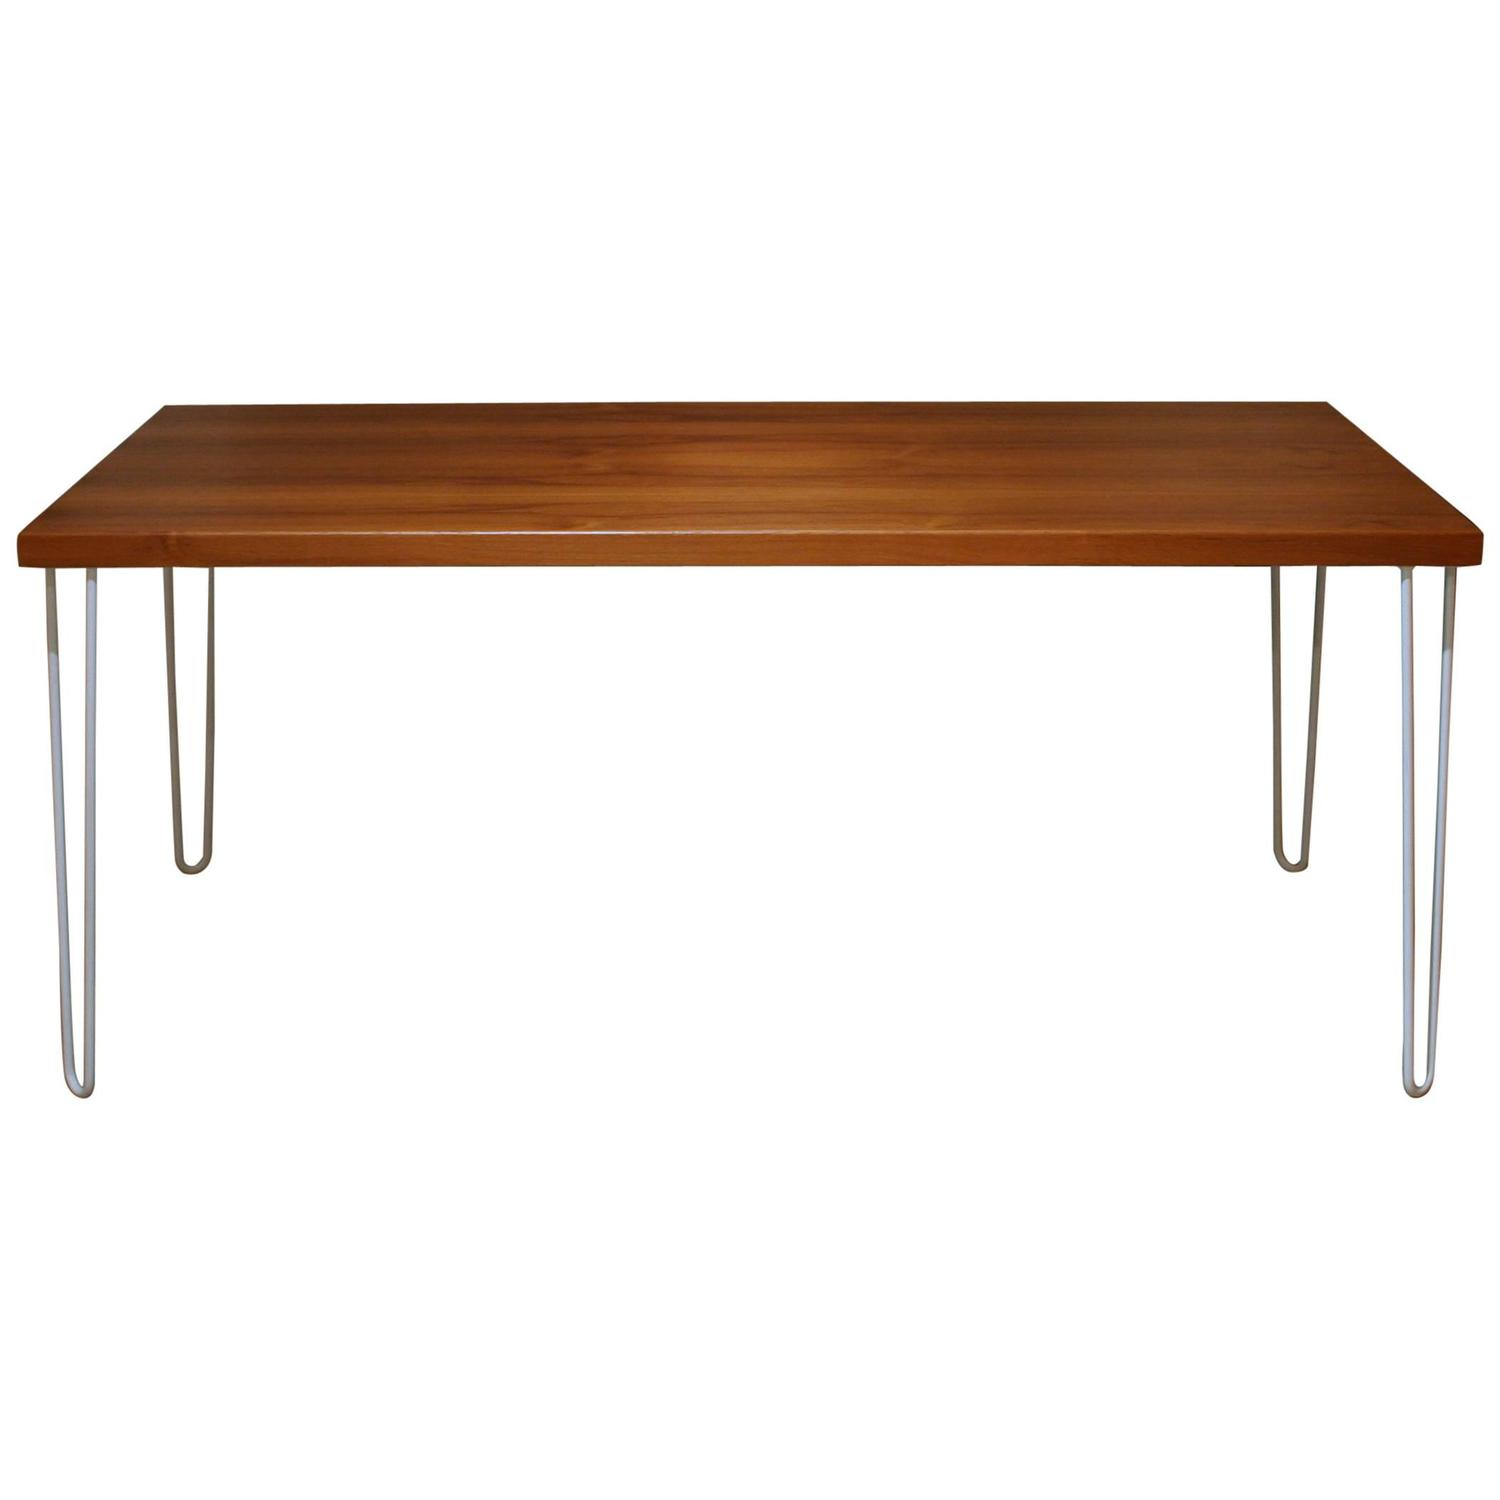 Teak dining table with metal legs at 1stdibs for Dining table with metal legs